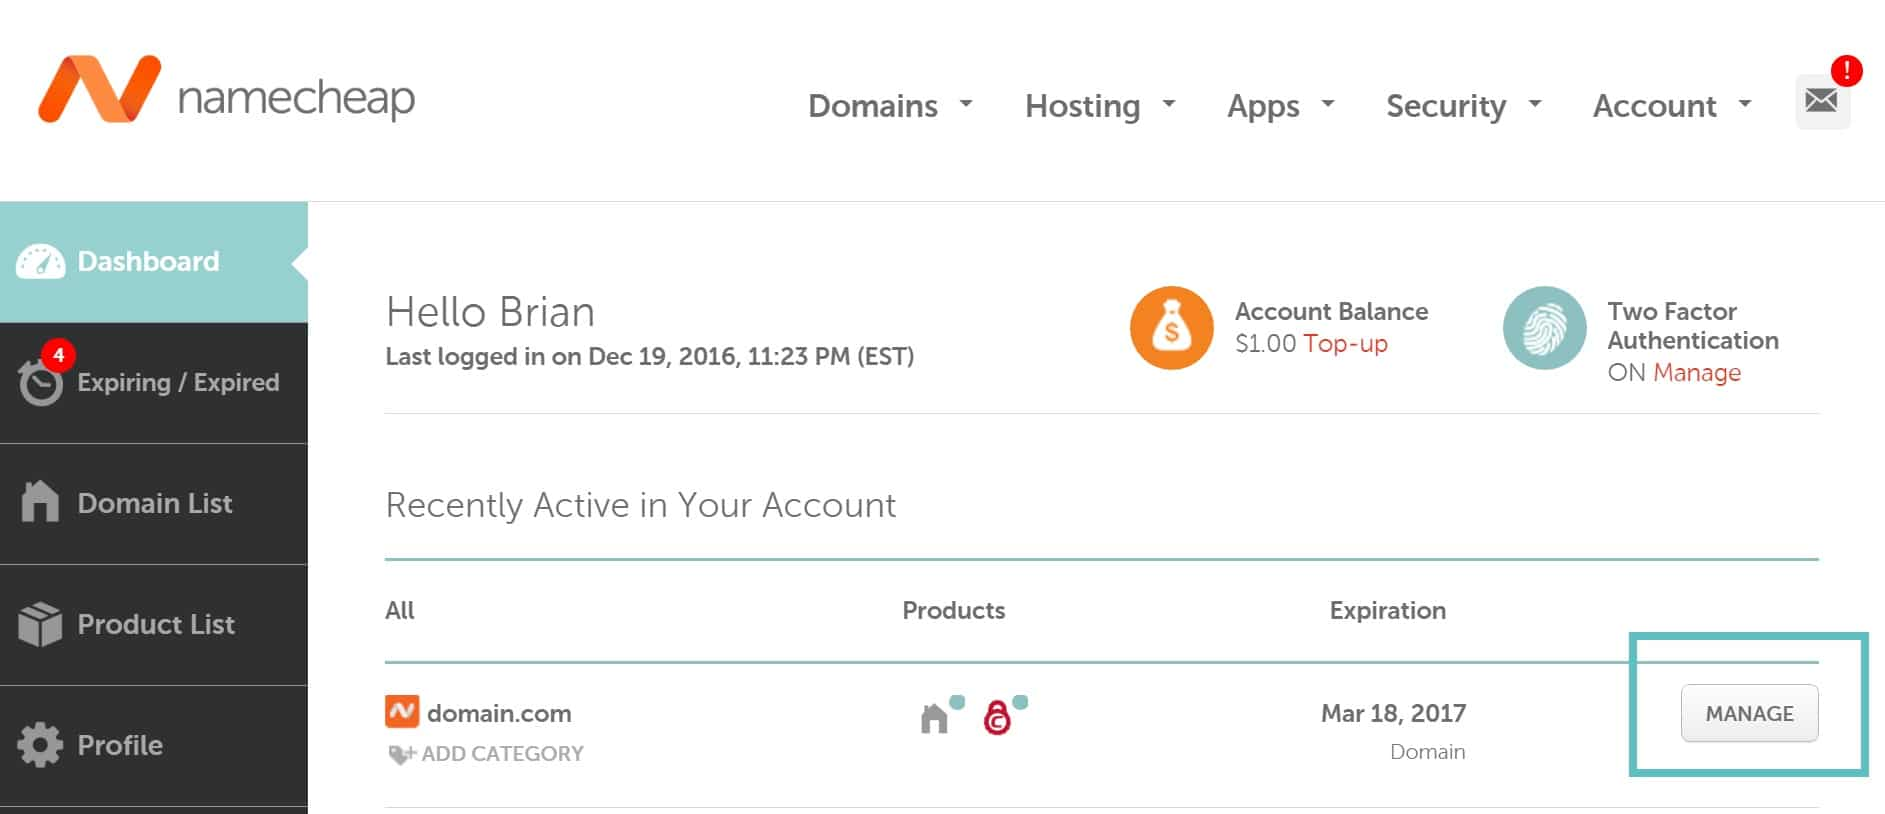 namecheap manage domain